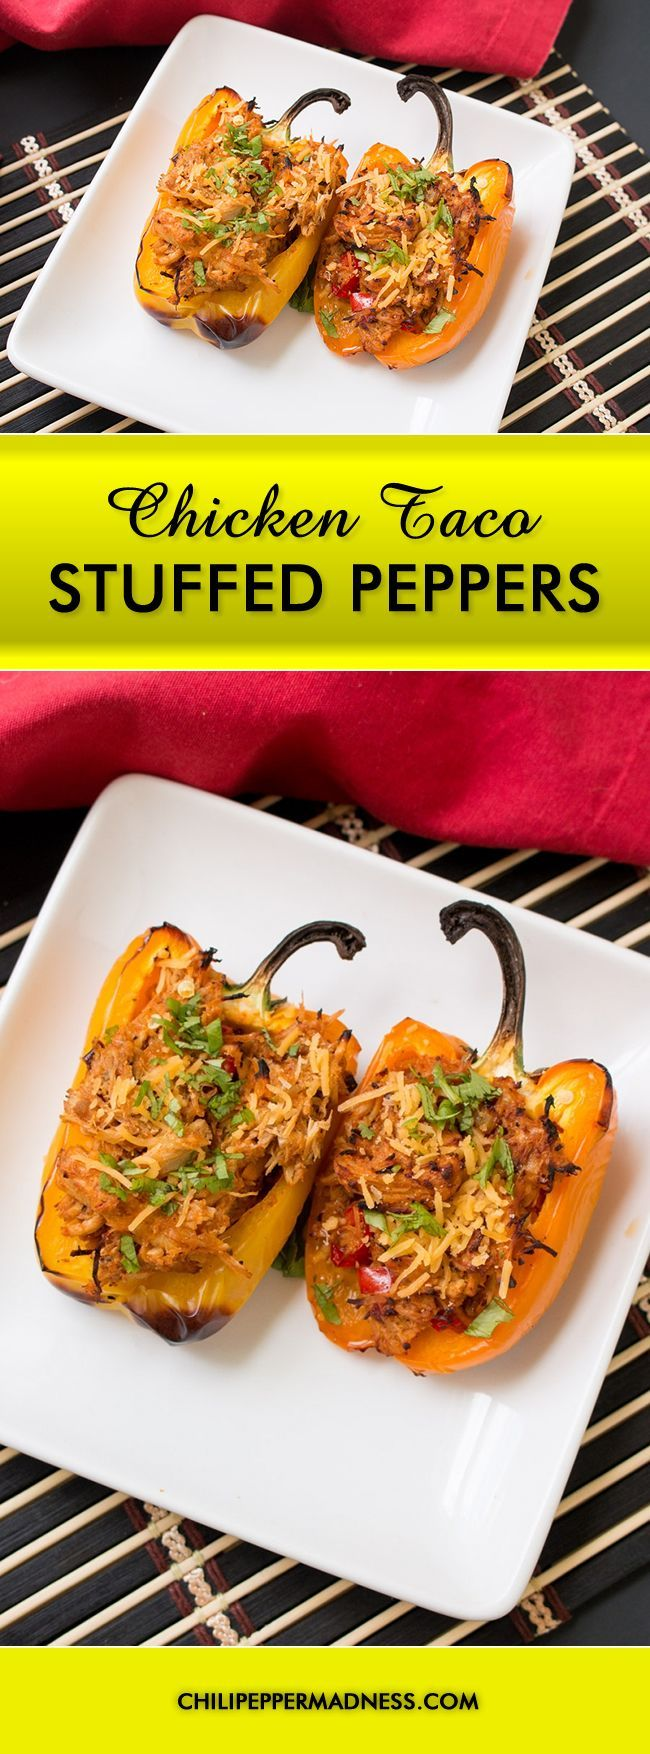 Chicken Taco Stuffed Peppers - Take all the best parts of your favorite chicken taco and turn it into a stuffed pepper. Here is the recipe. Yep. Stuffed peppers done up chicken taco style